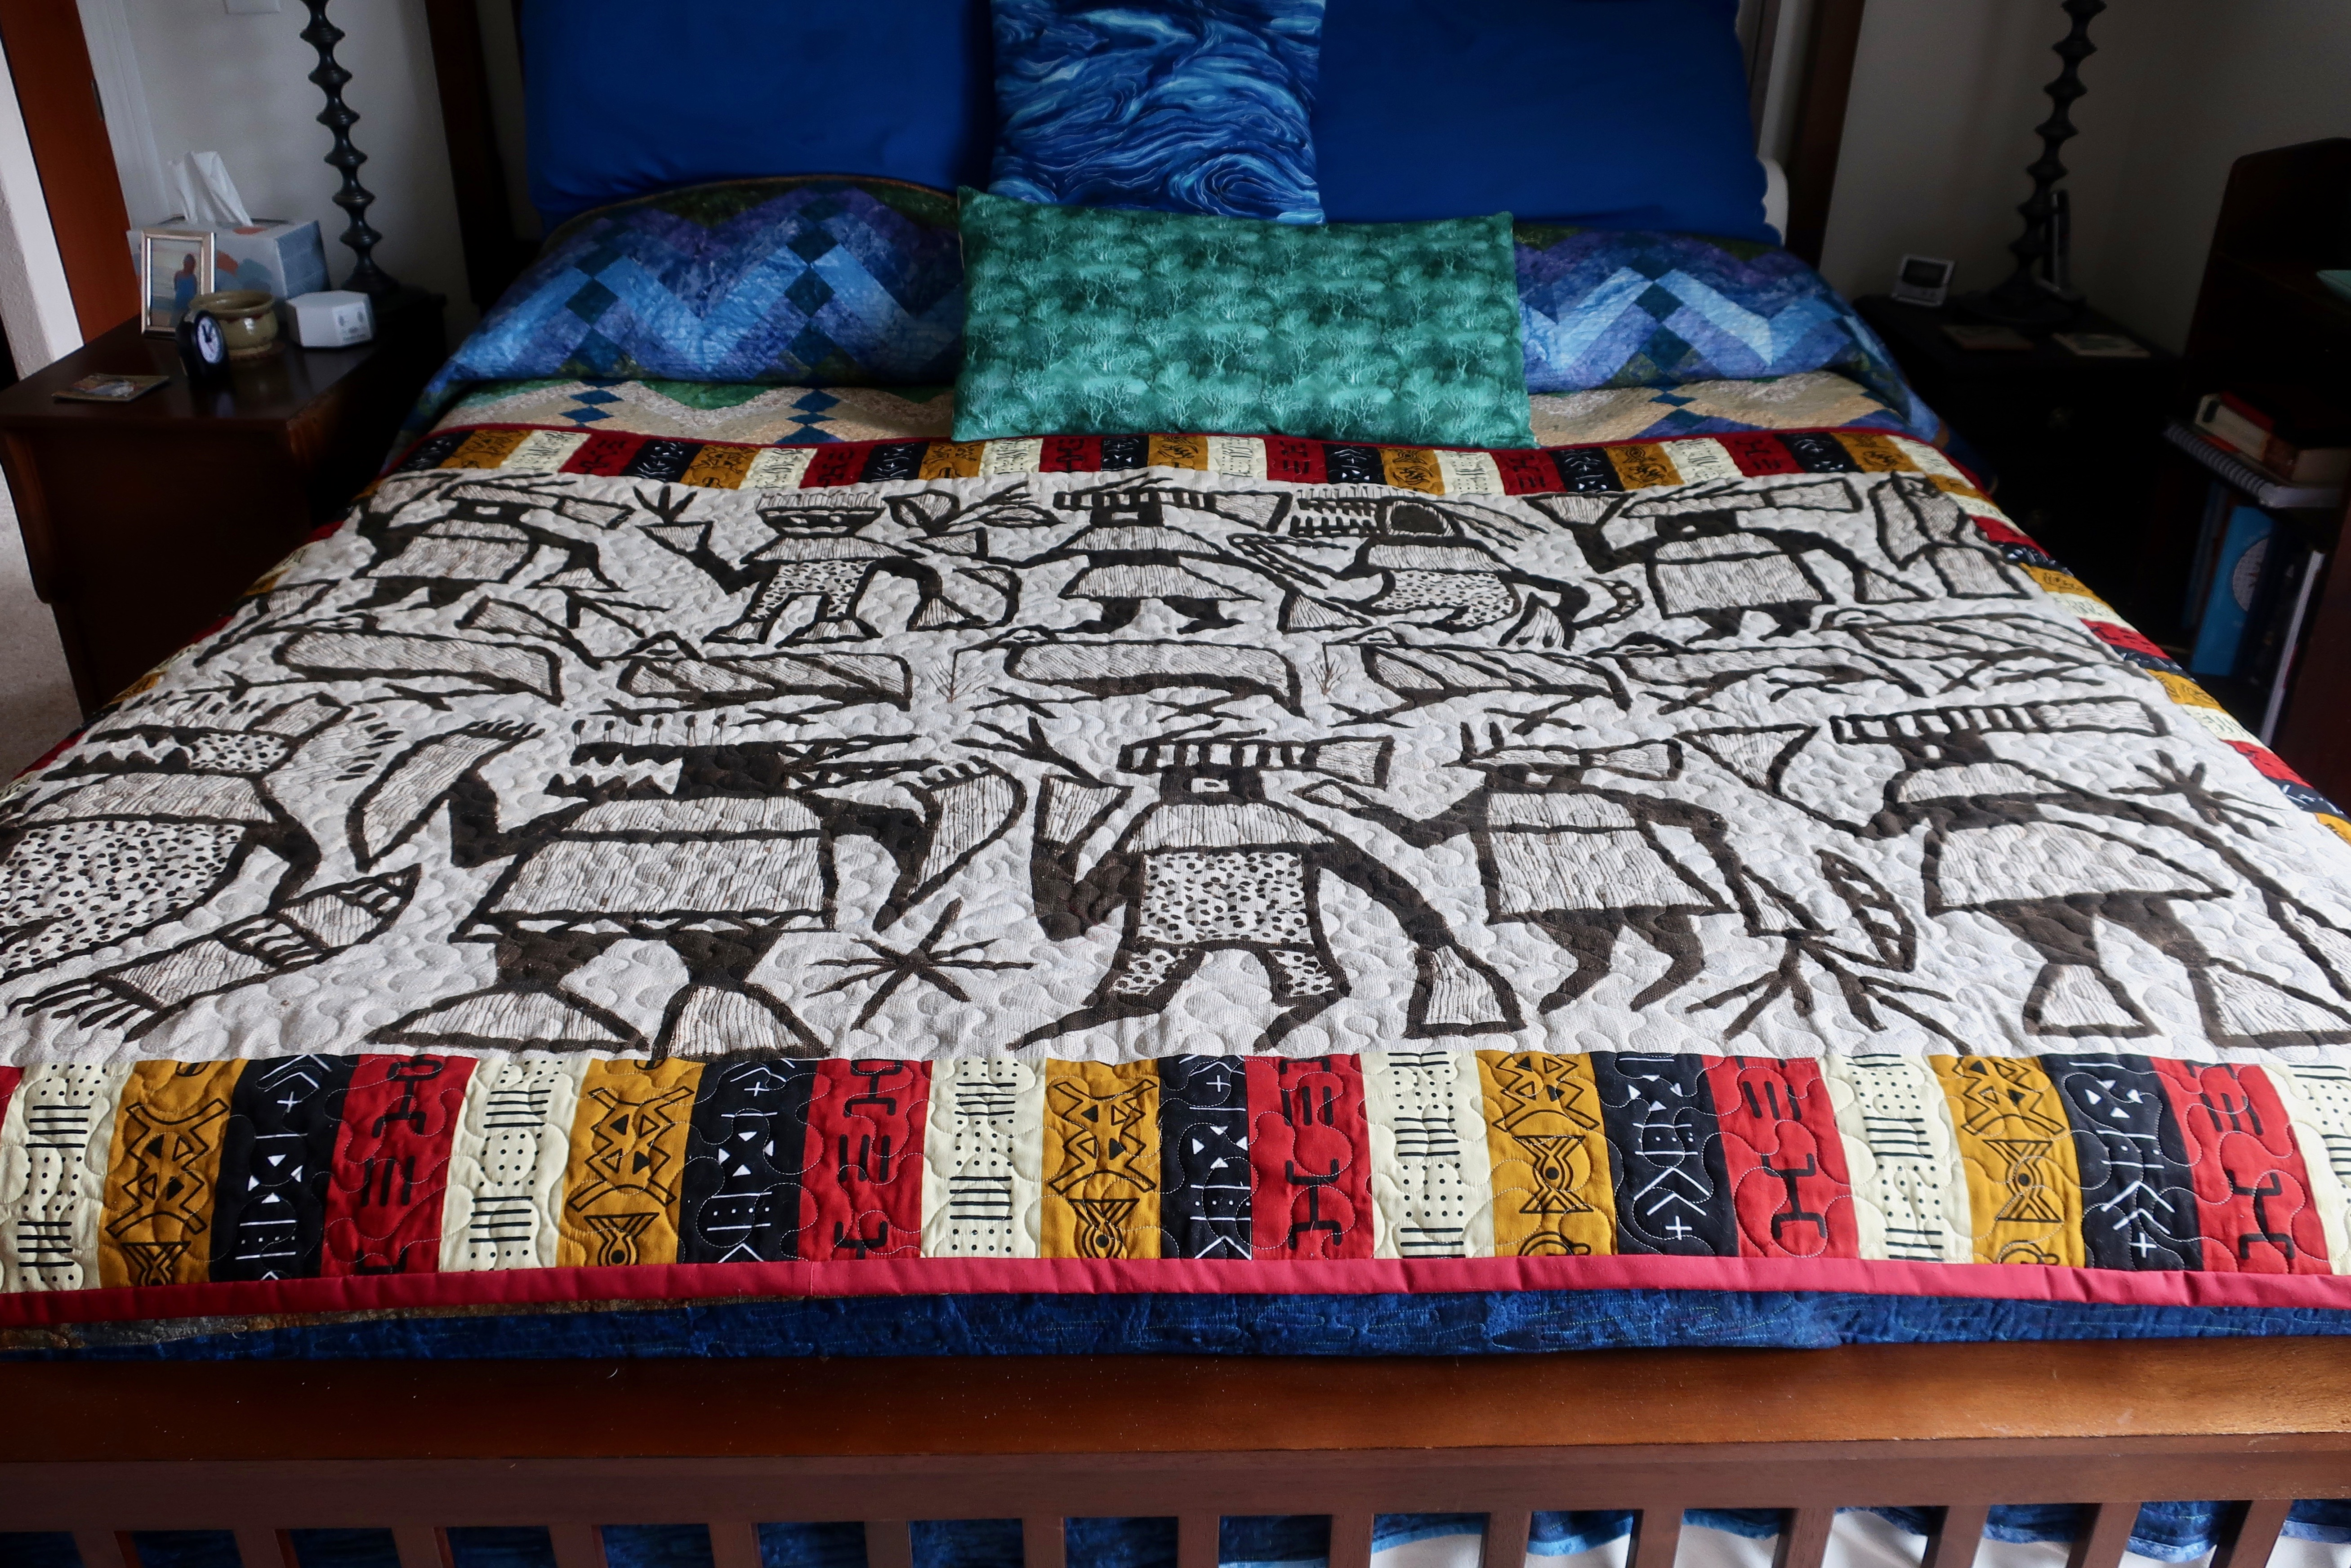 Bed quilt featuring Liberian country cloth. Photo bt Curt Mekemson.